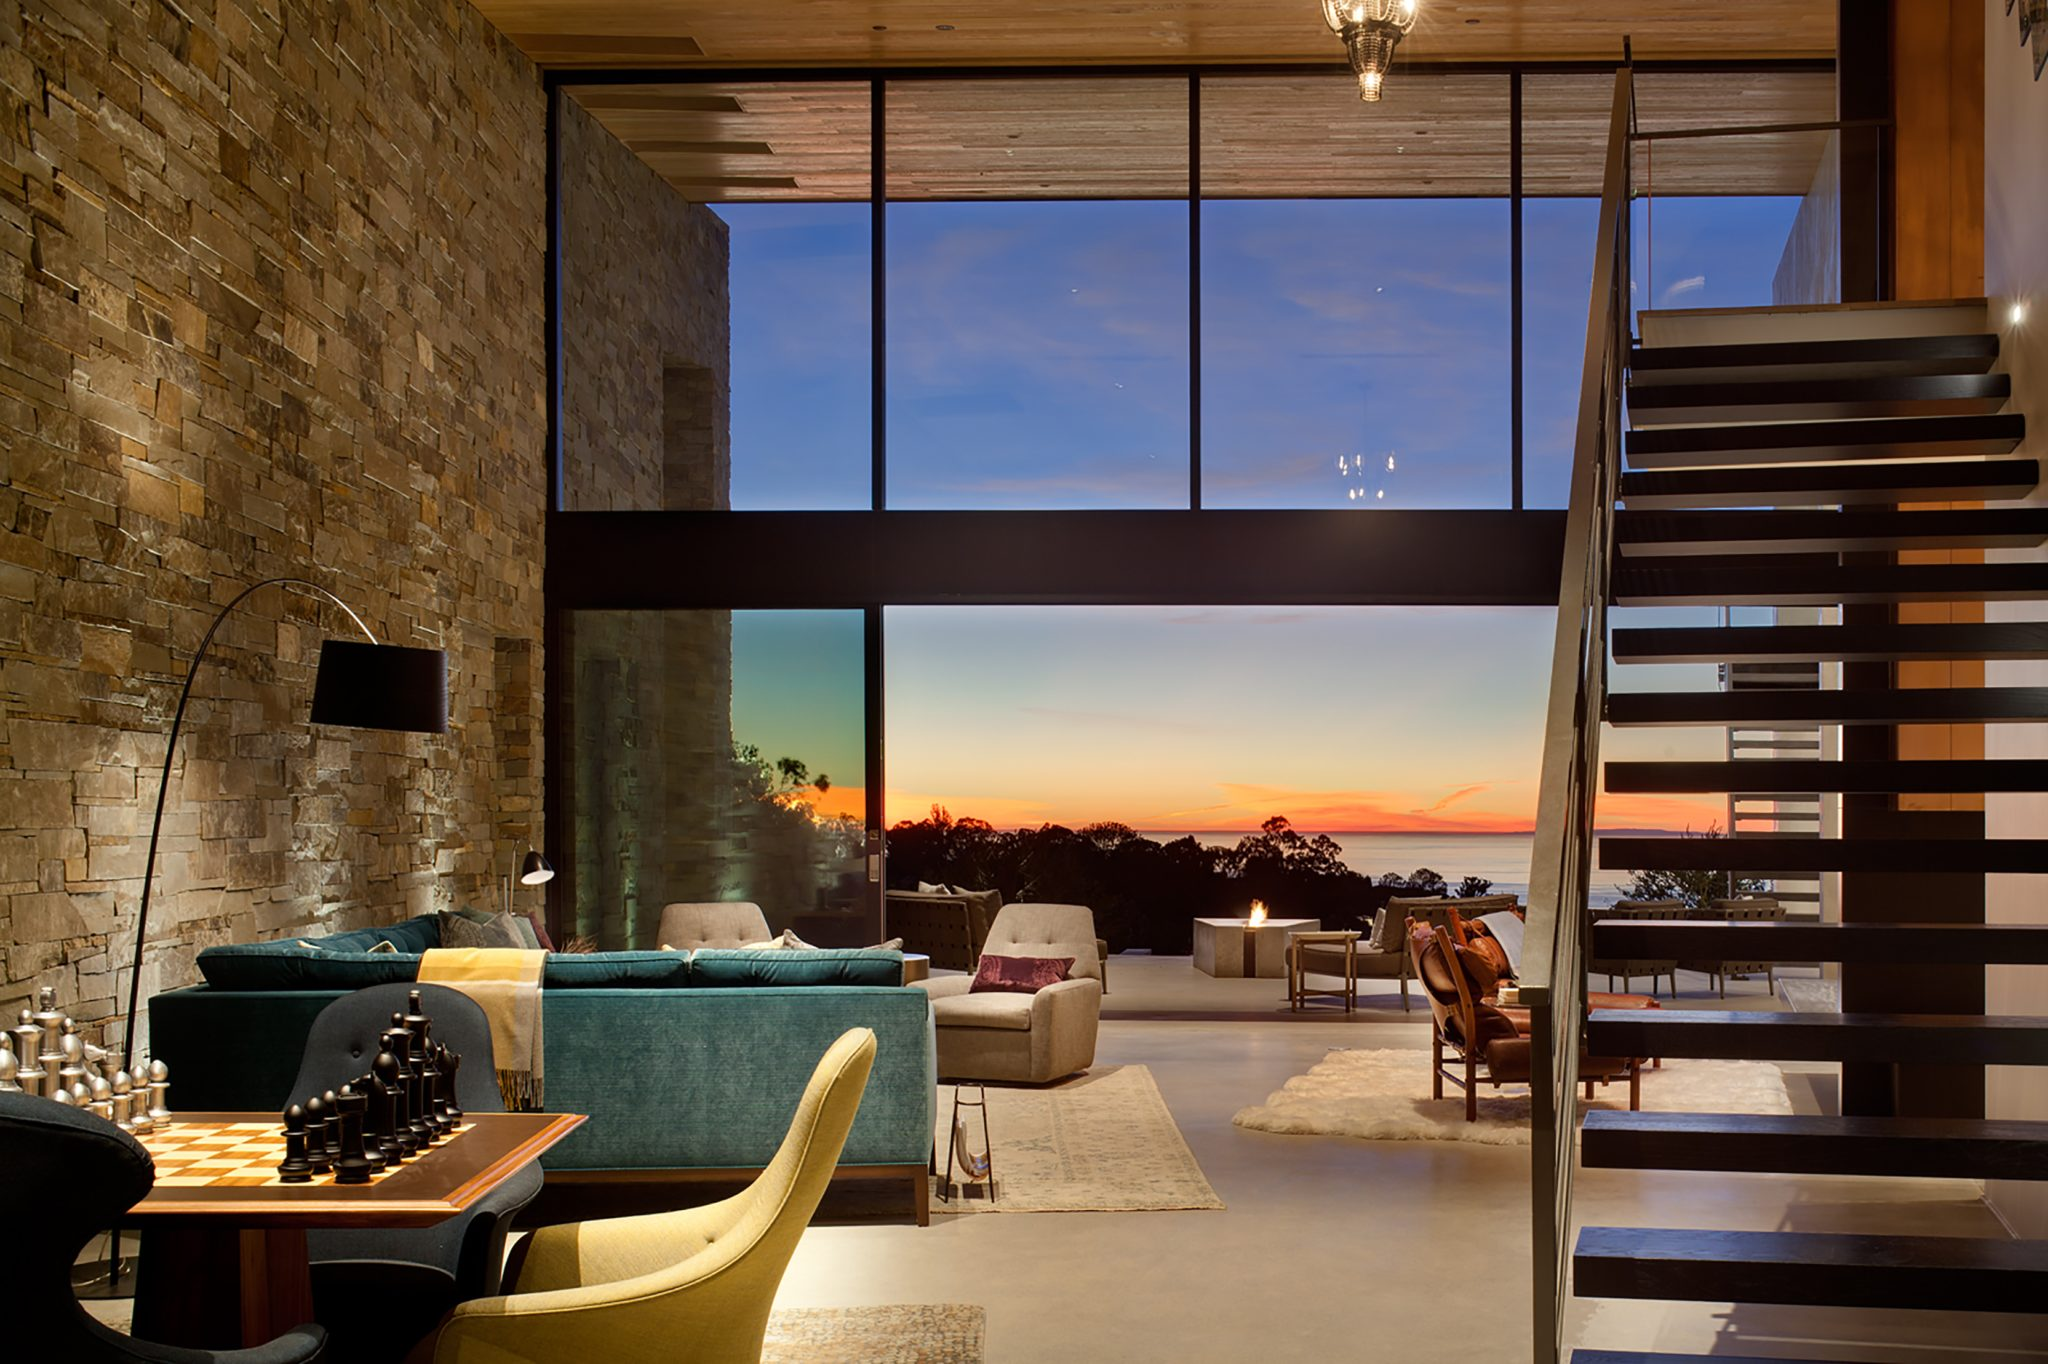 La Jolla Cliff House, great room that opens up to outdoor terrace with view by Dawson Design Group